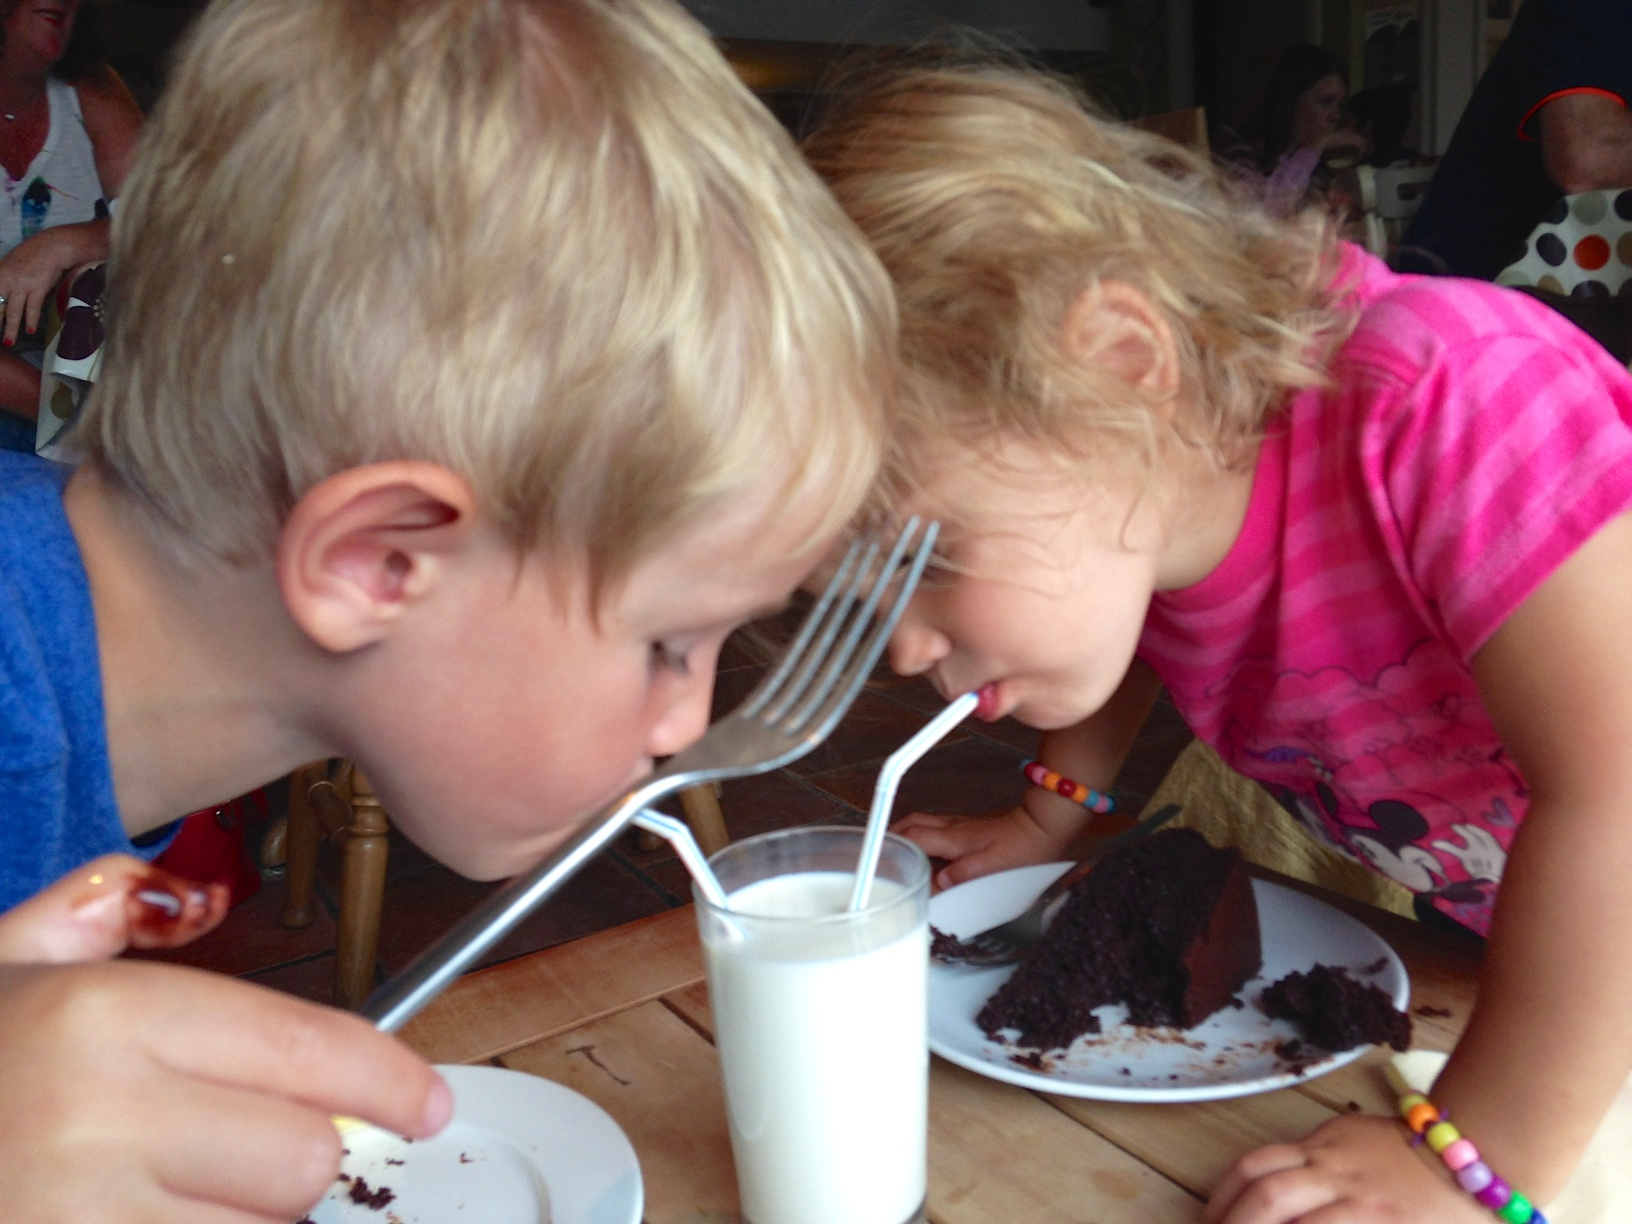 Little swimmers loving their delicious chocolate cake and milk